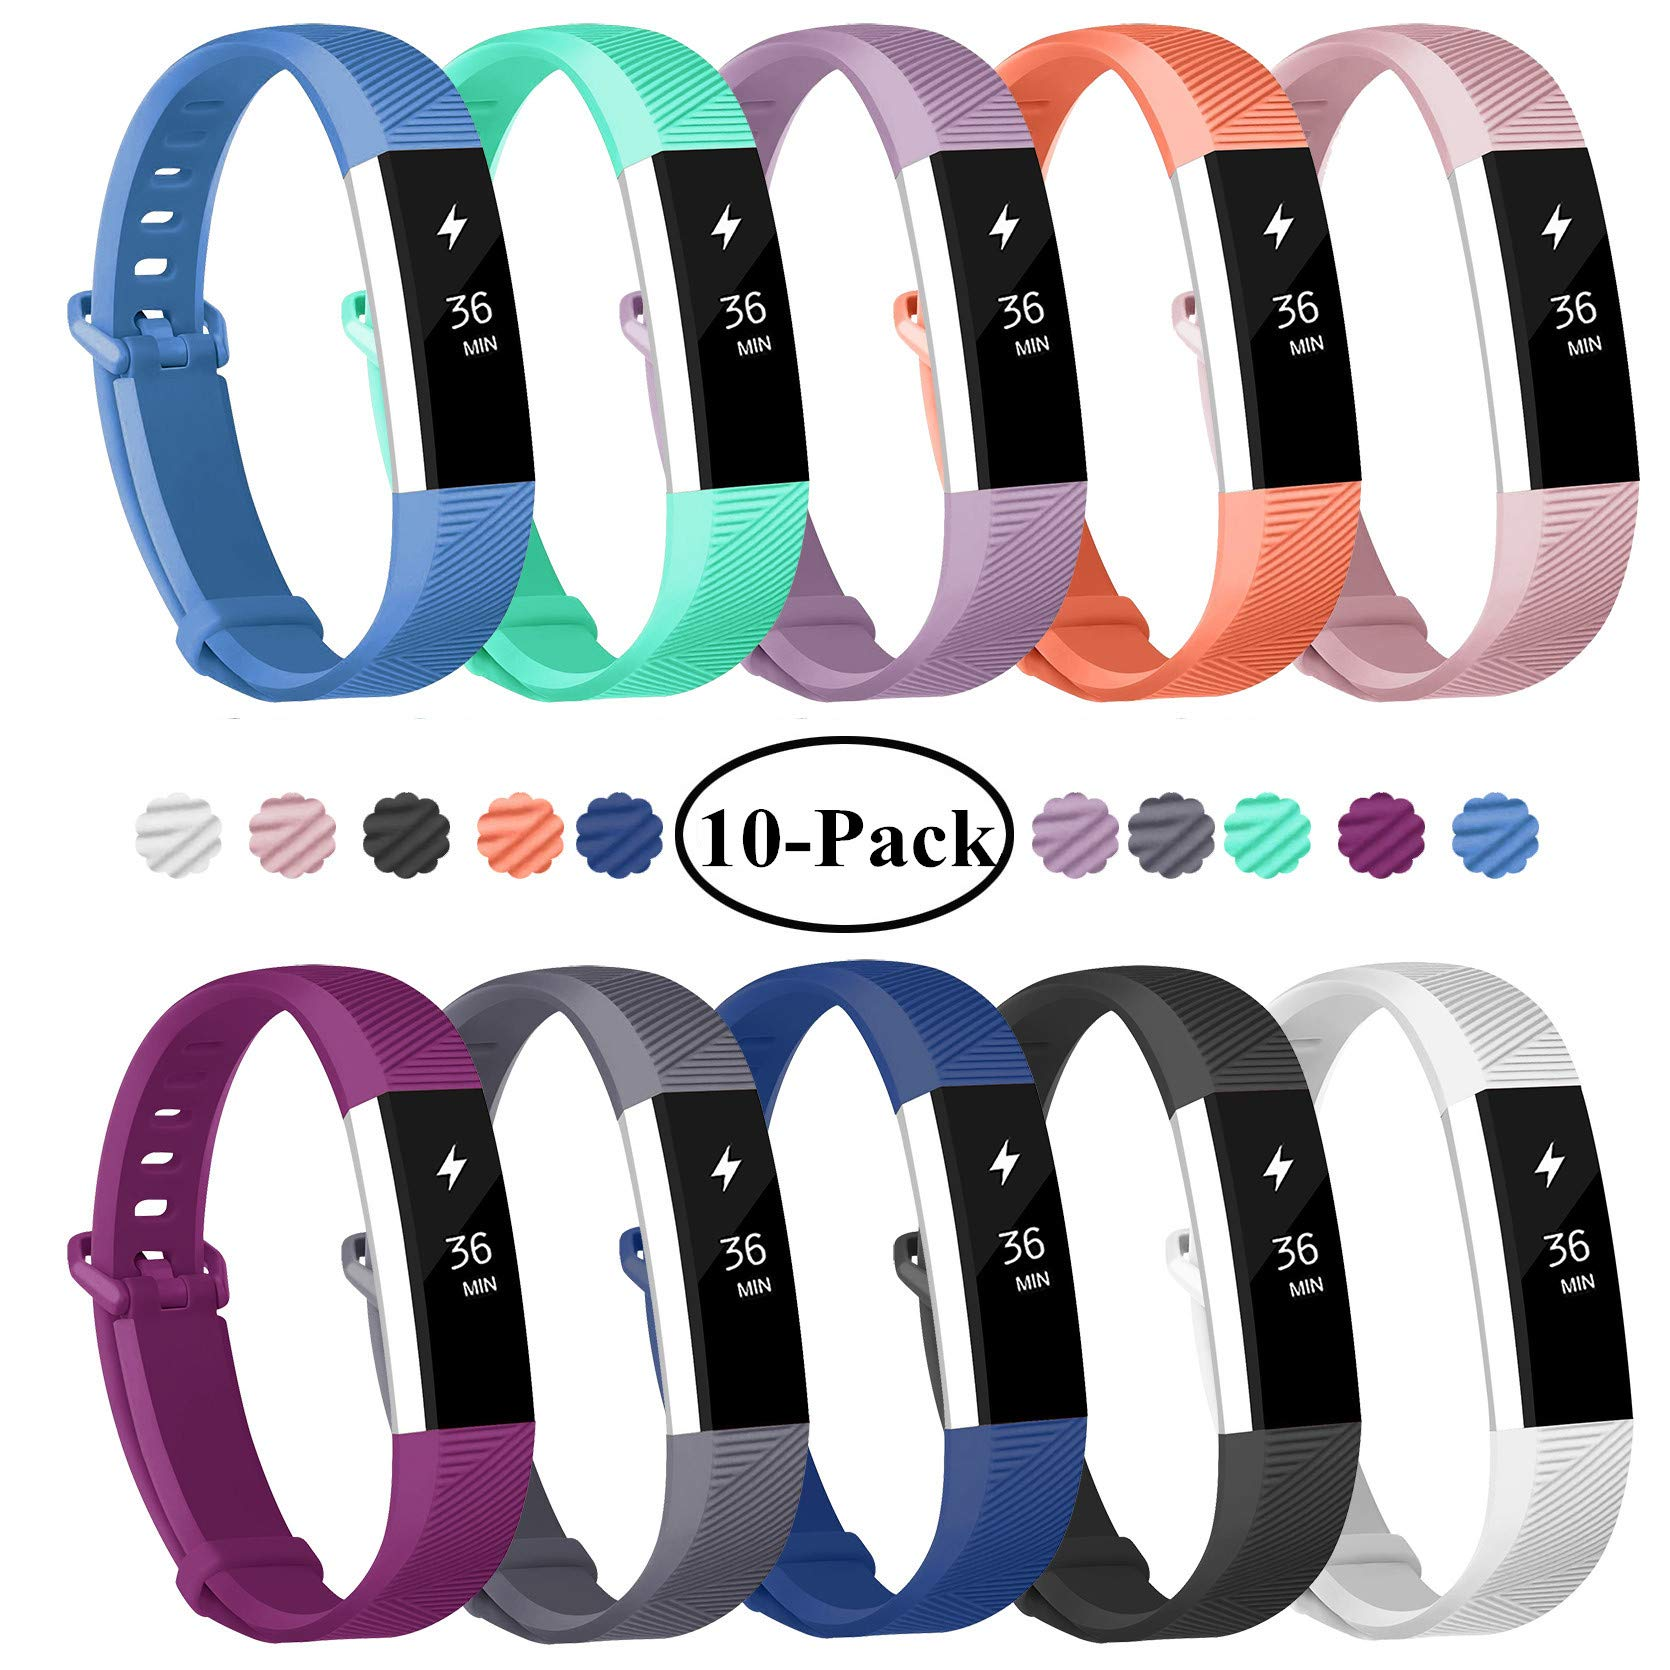 Fundro Replacement Bands Compatible with Fitbit Alta and Fitbit Alta HR, Newest Sport Strap Wristband with Secure Metal Buckle (A# 10-Pack, Small) by Fundro